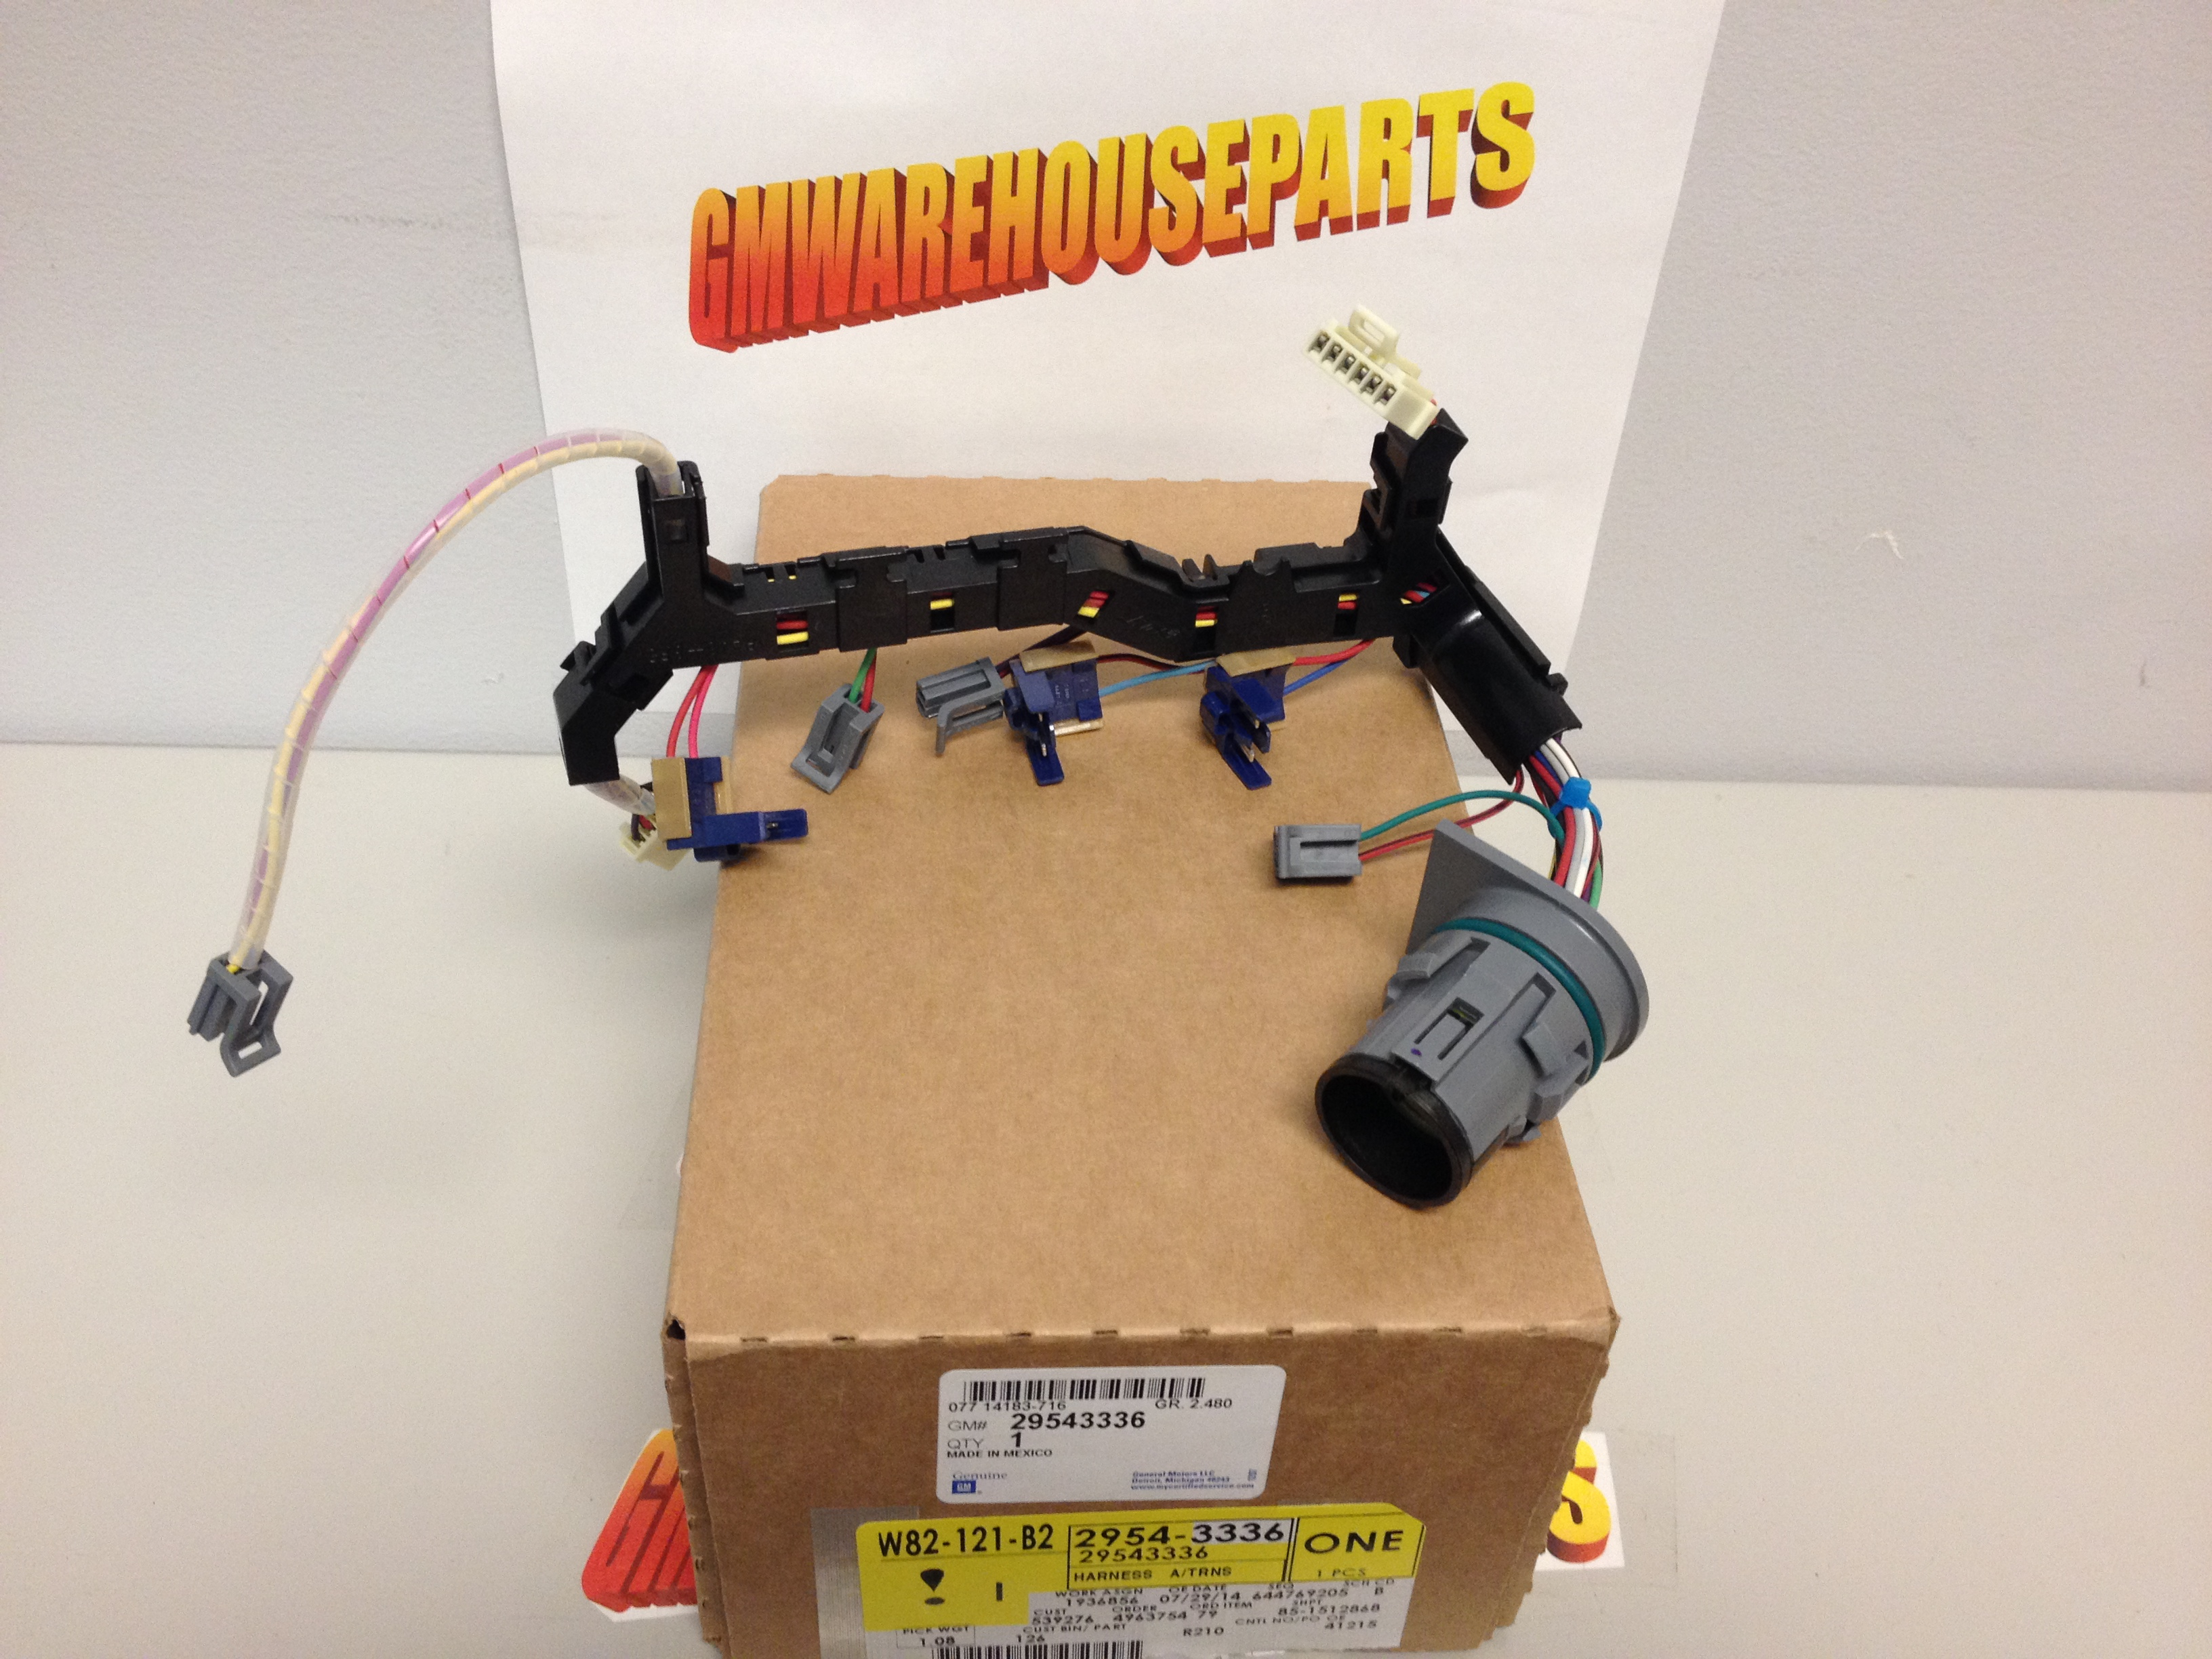 allison automatic transmission wiring harness new gm  allison automatic transmission wiring harness new gm 29543336